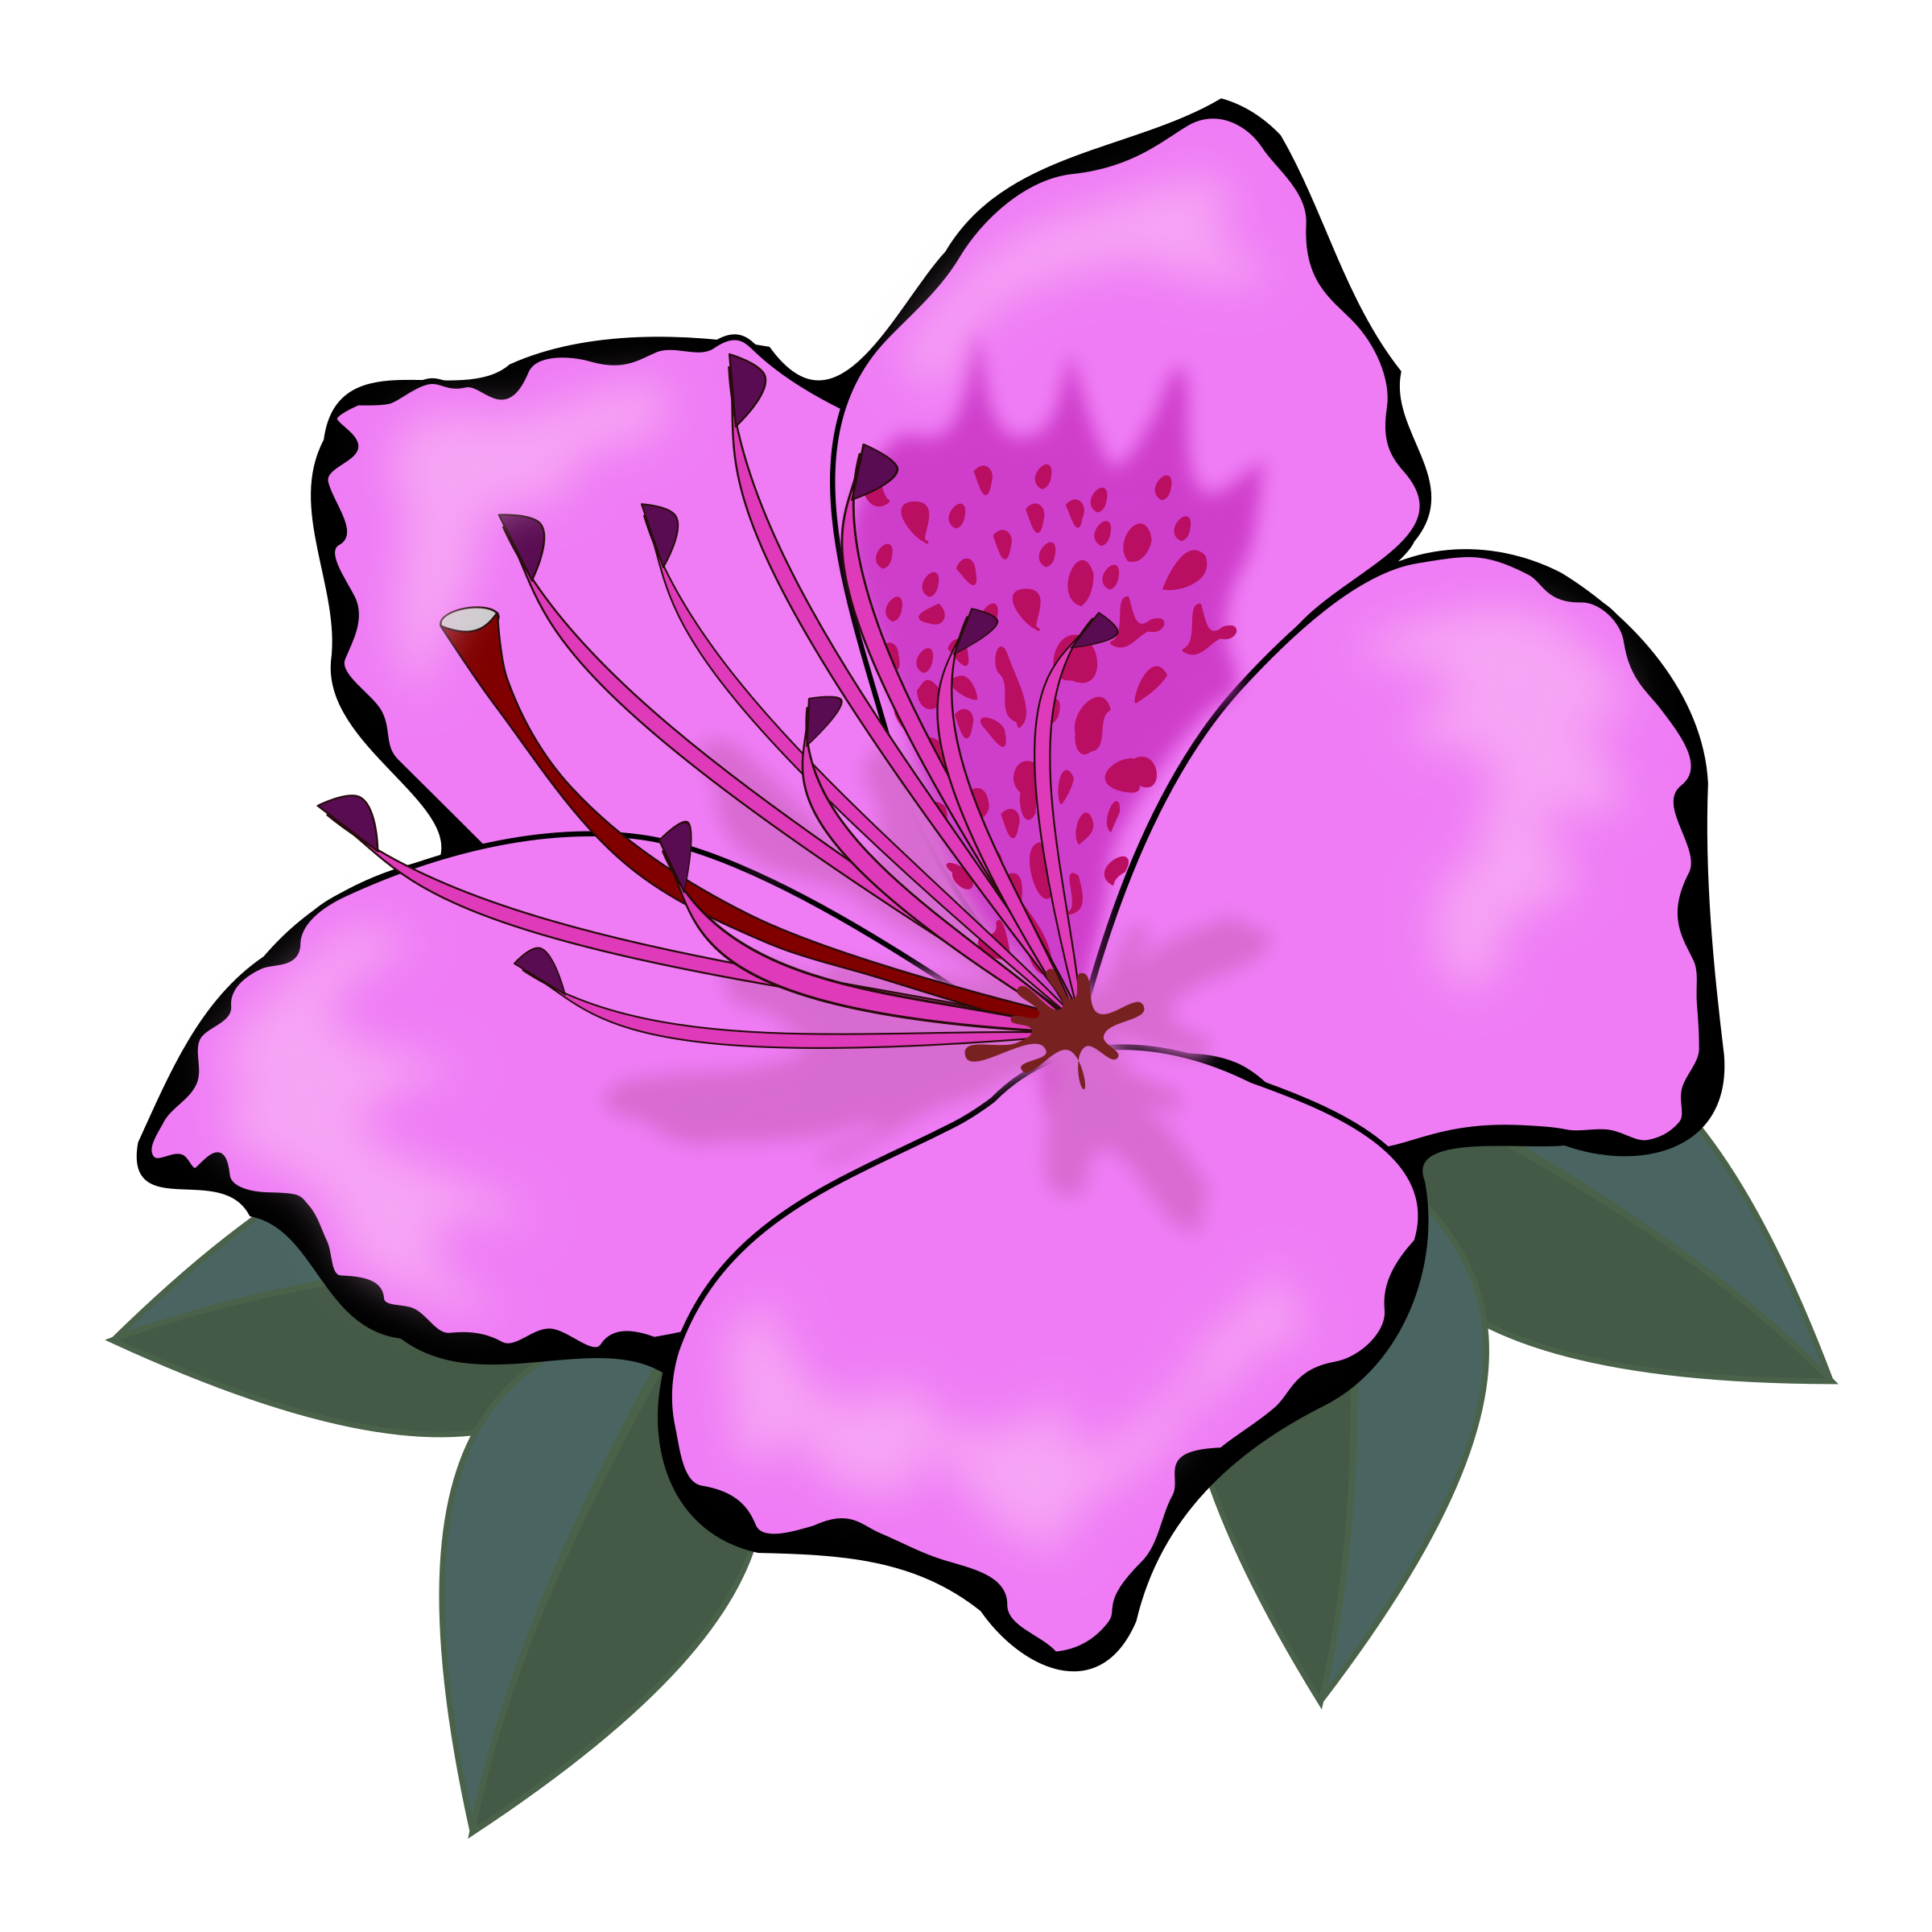 clipart flower clipground cliparts giant